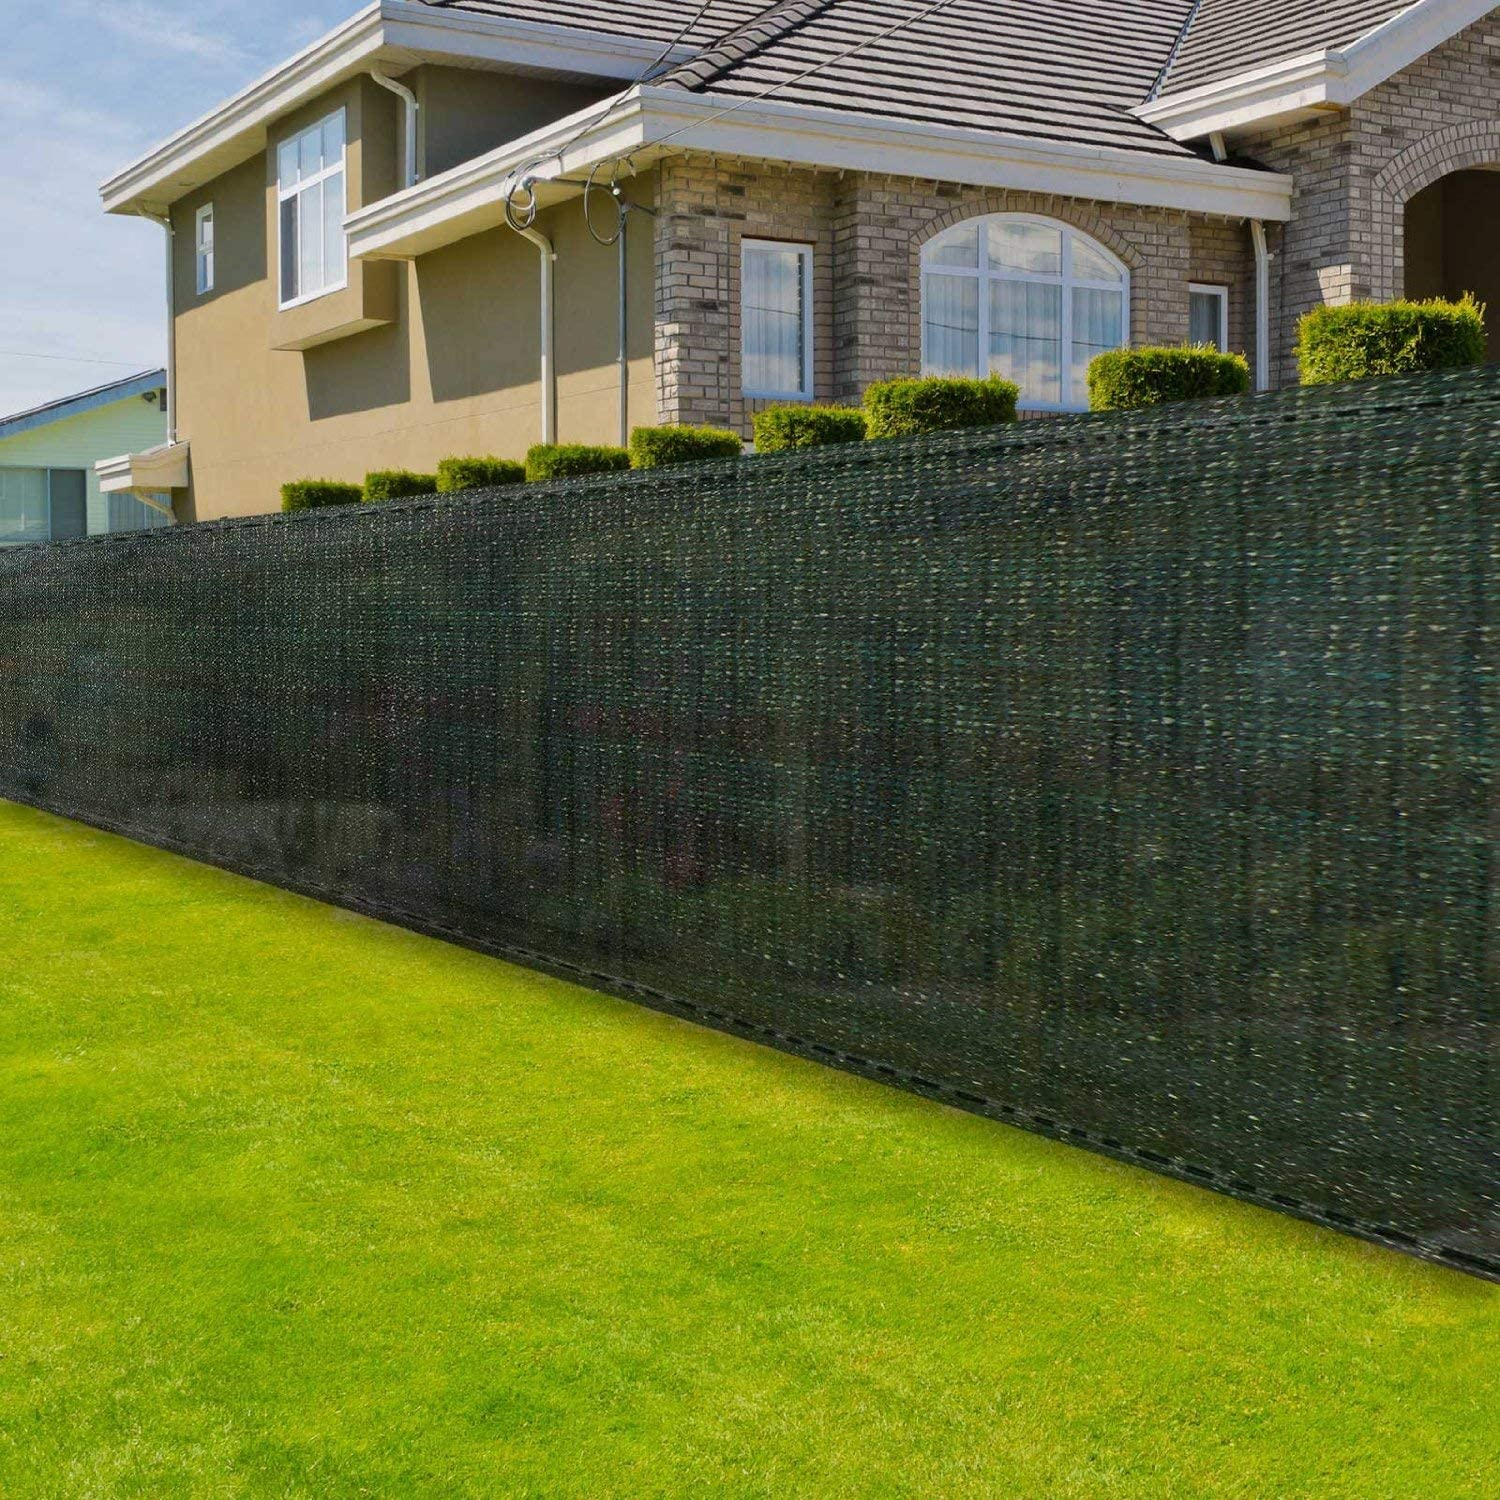 100x2000cm Multi Purpose HDPE Netting   Many Sizes Available casa pura Wind Break Net 1x20m Privacy Fencing Screen